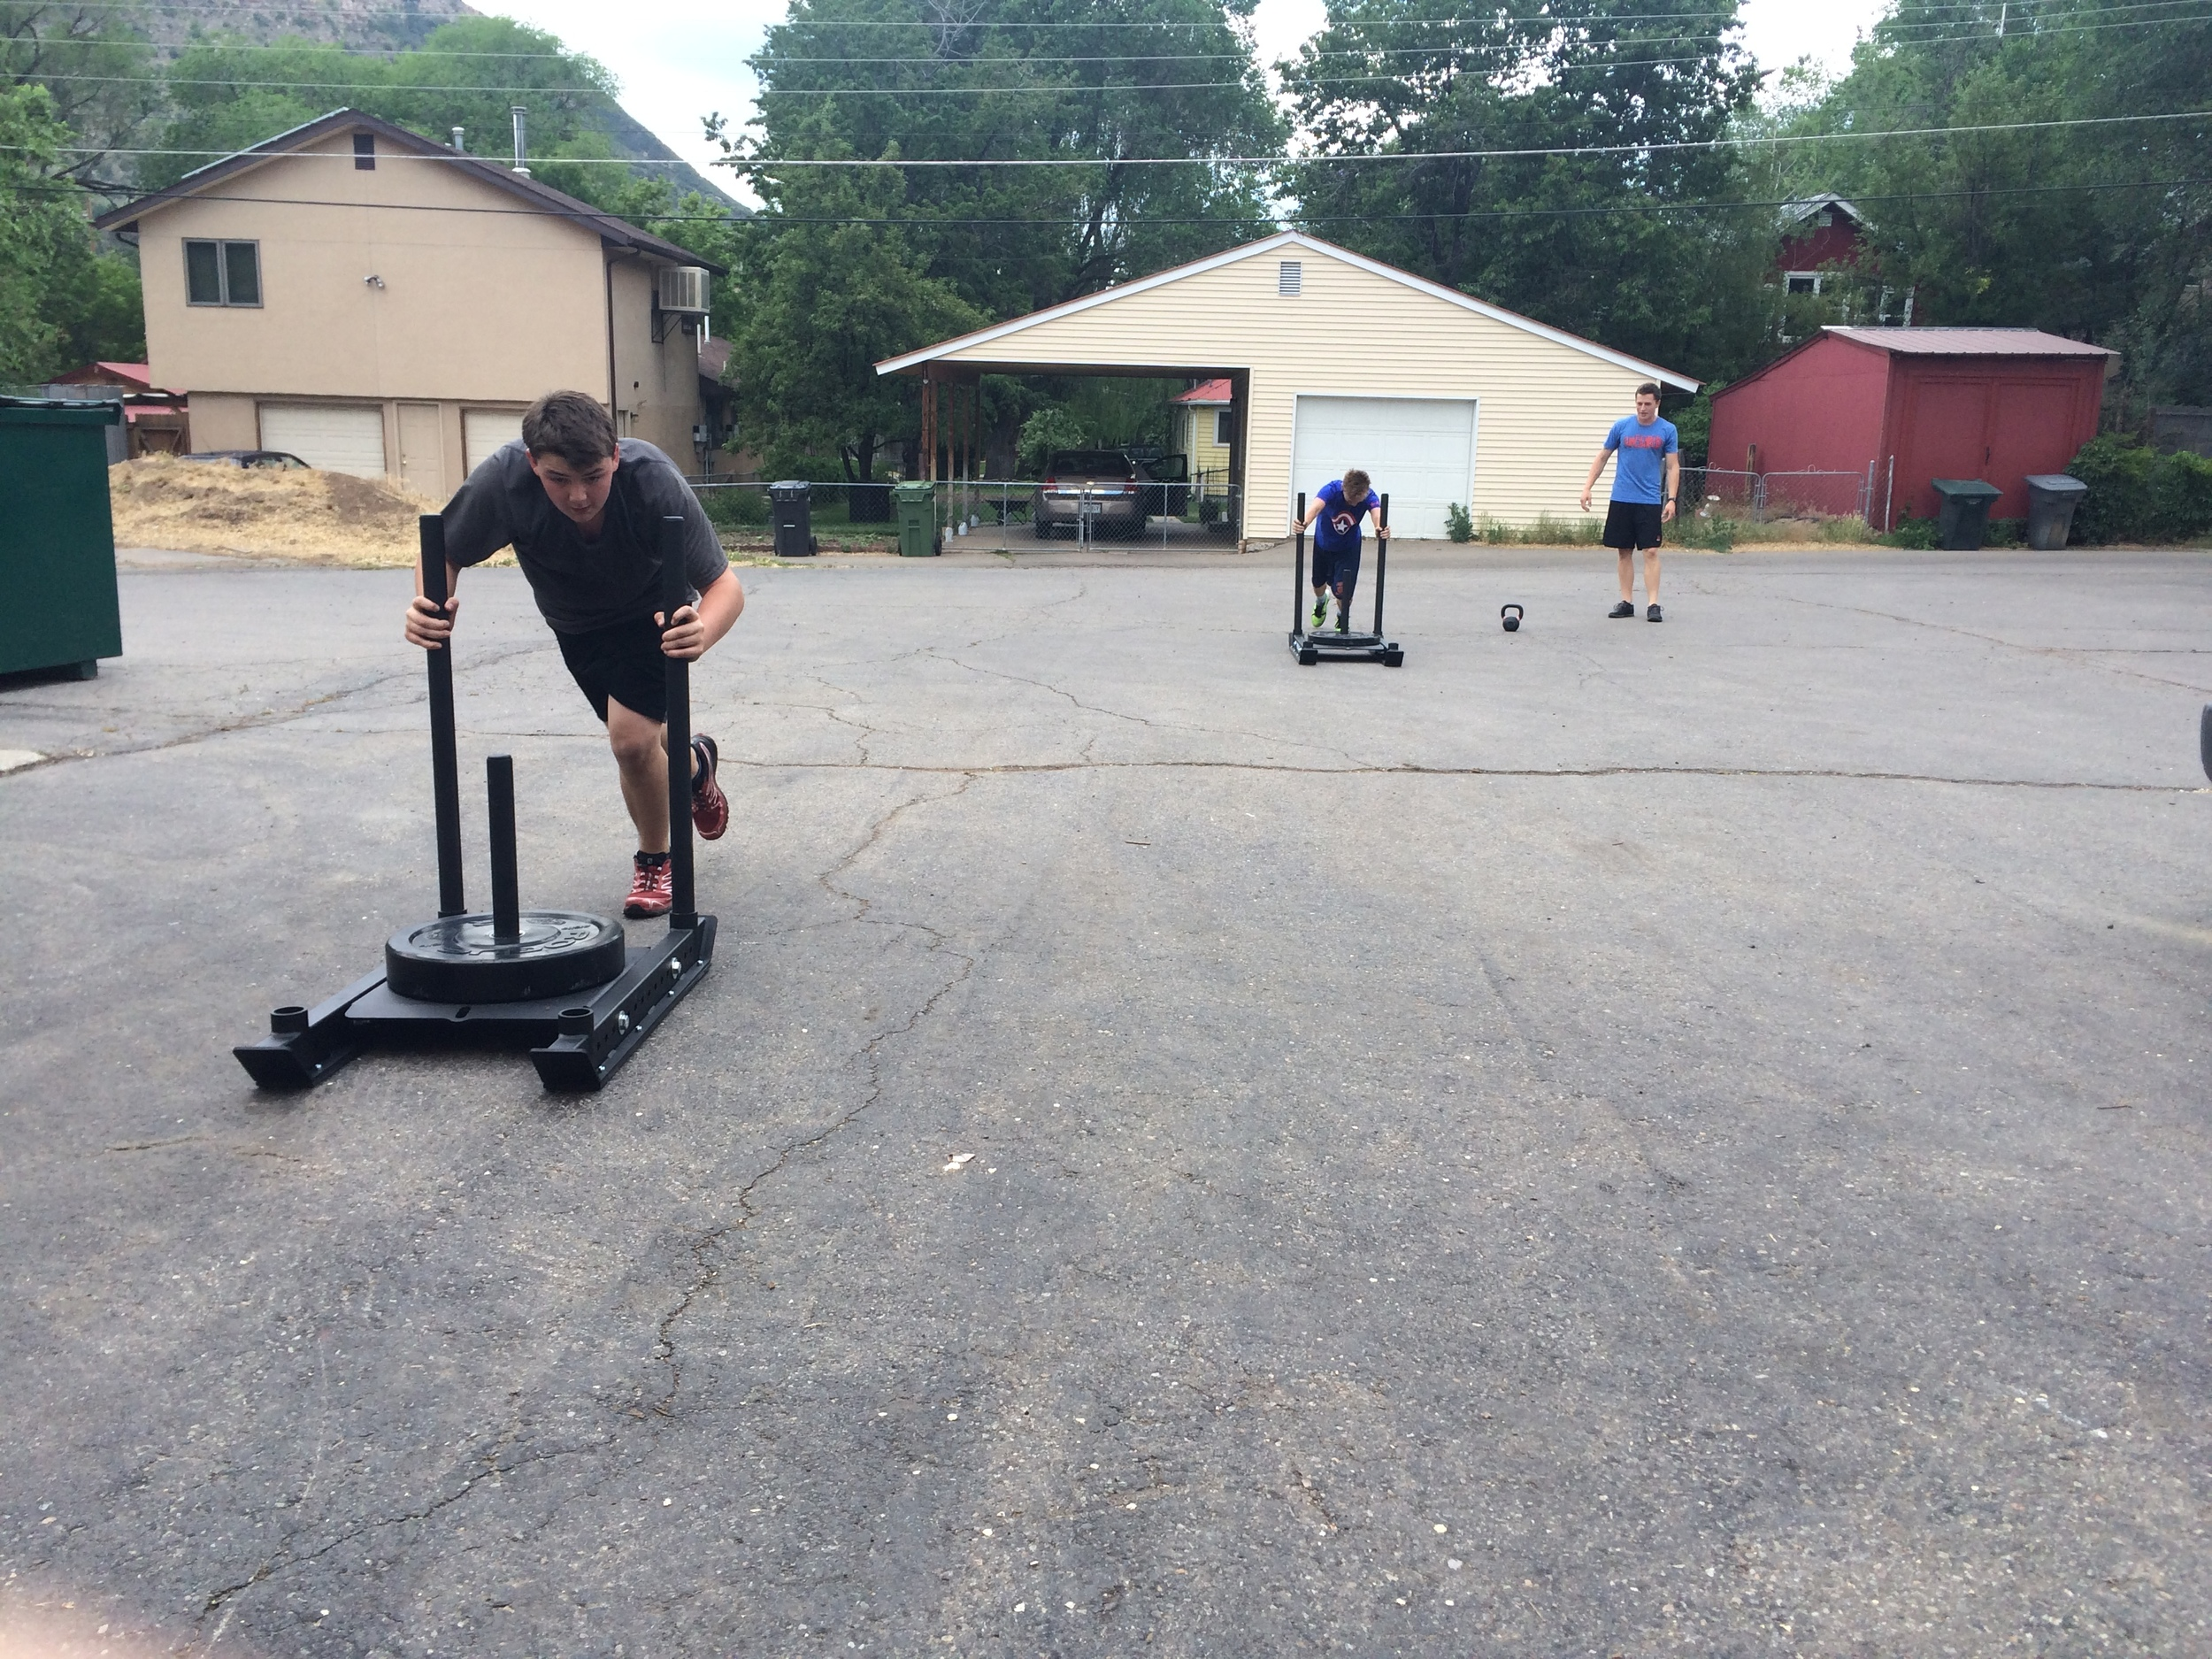 Have you tried the new sleds yet?